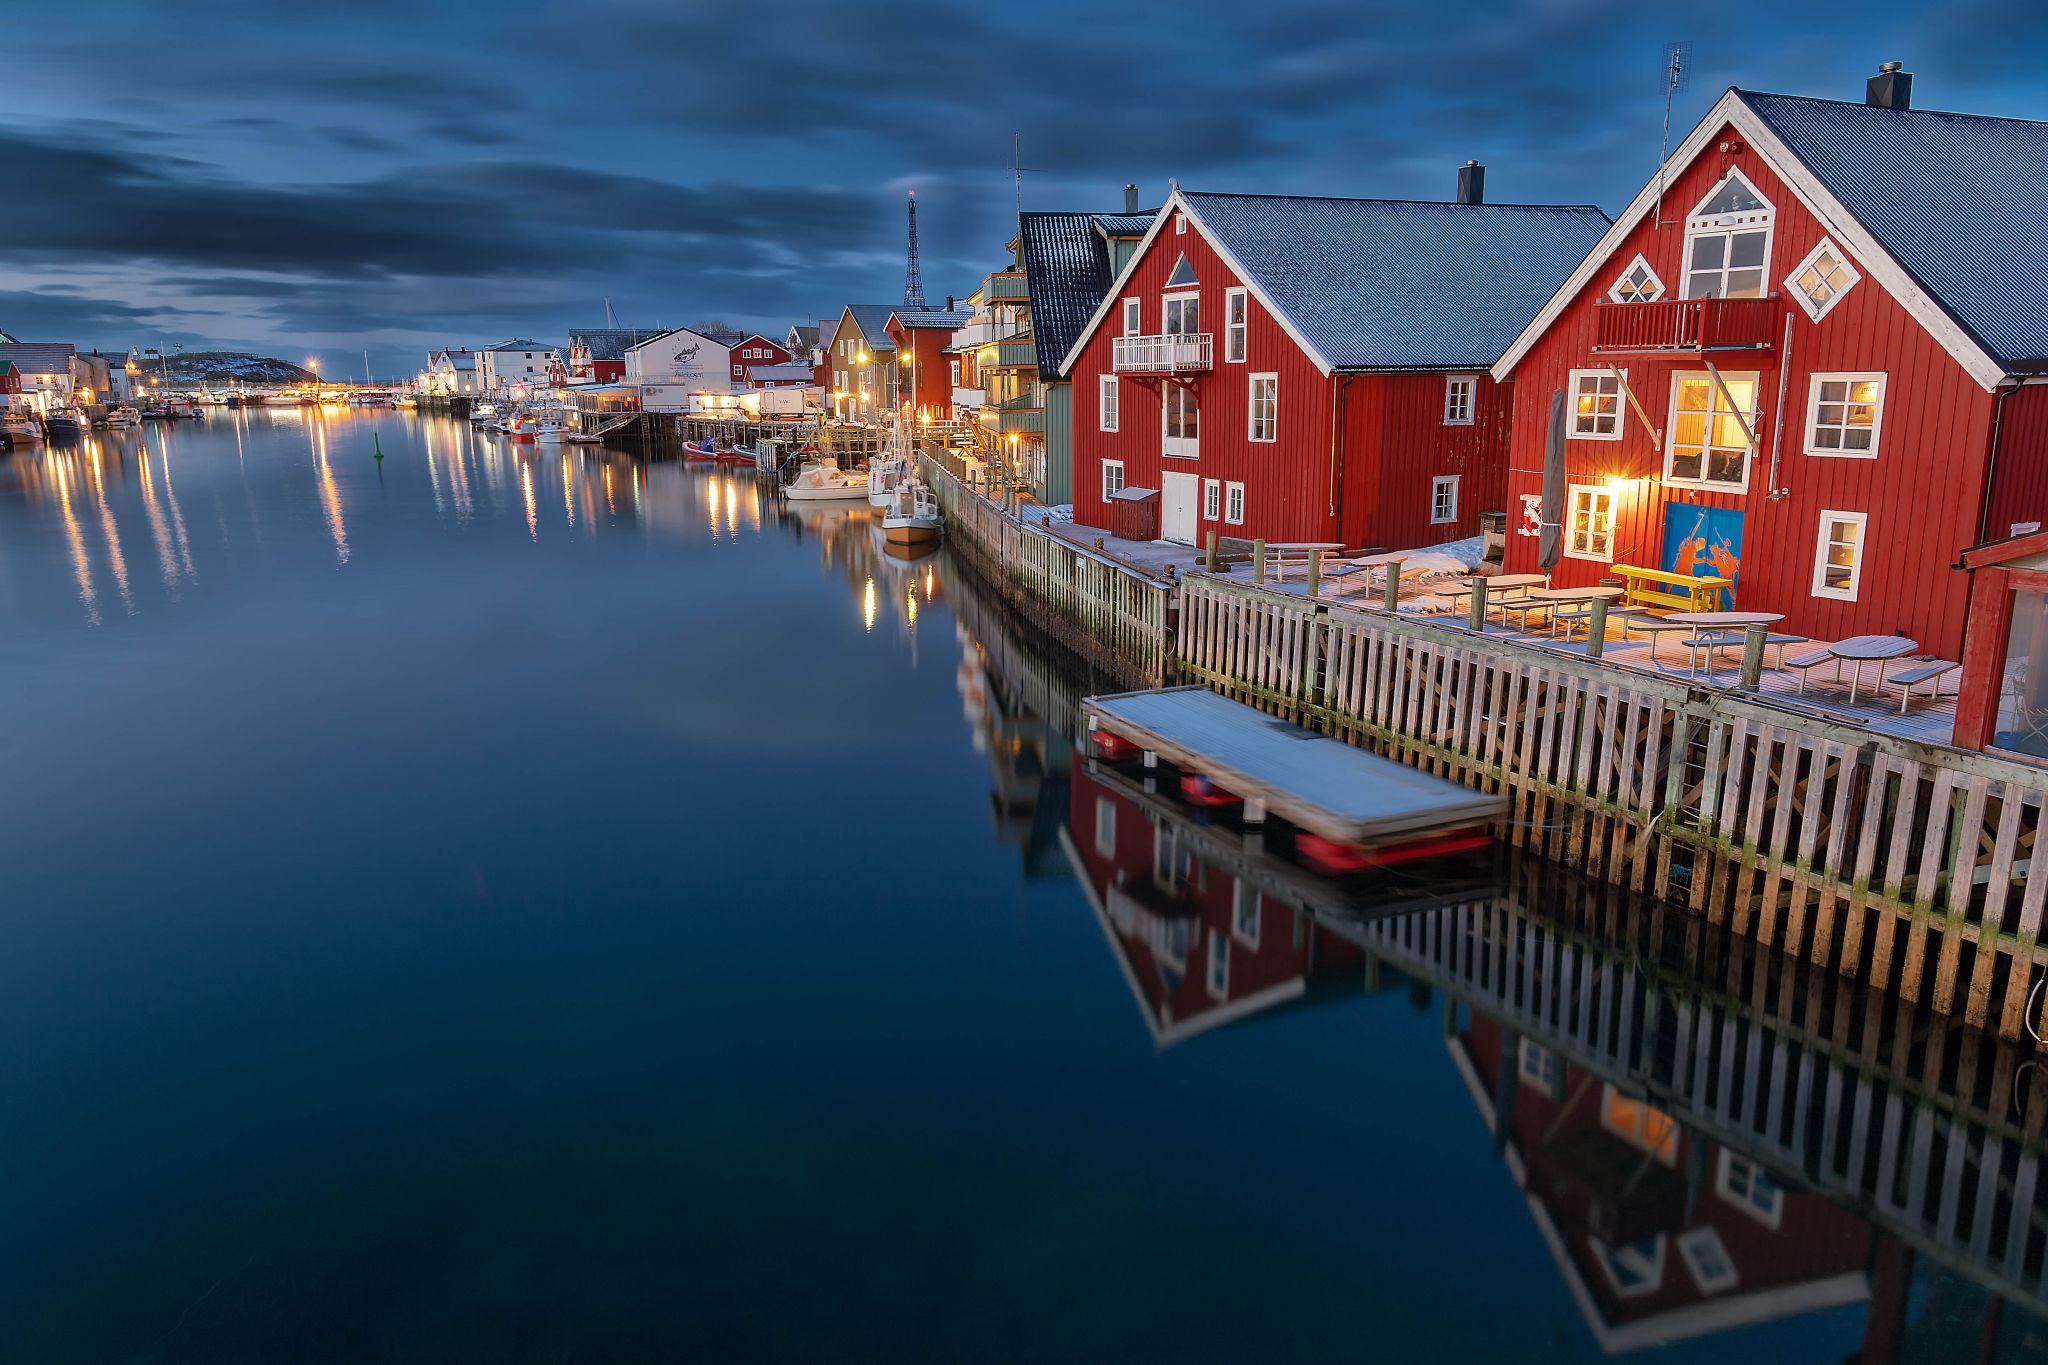 Henningsvaer after the storm, Norway